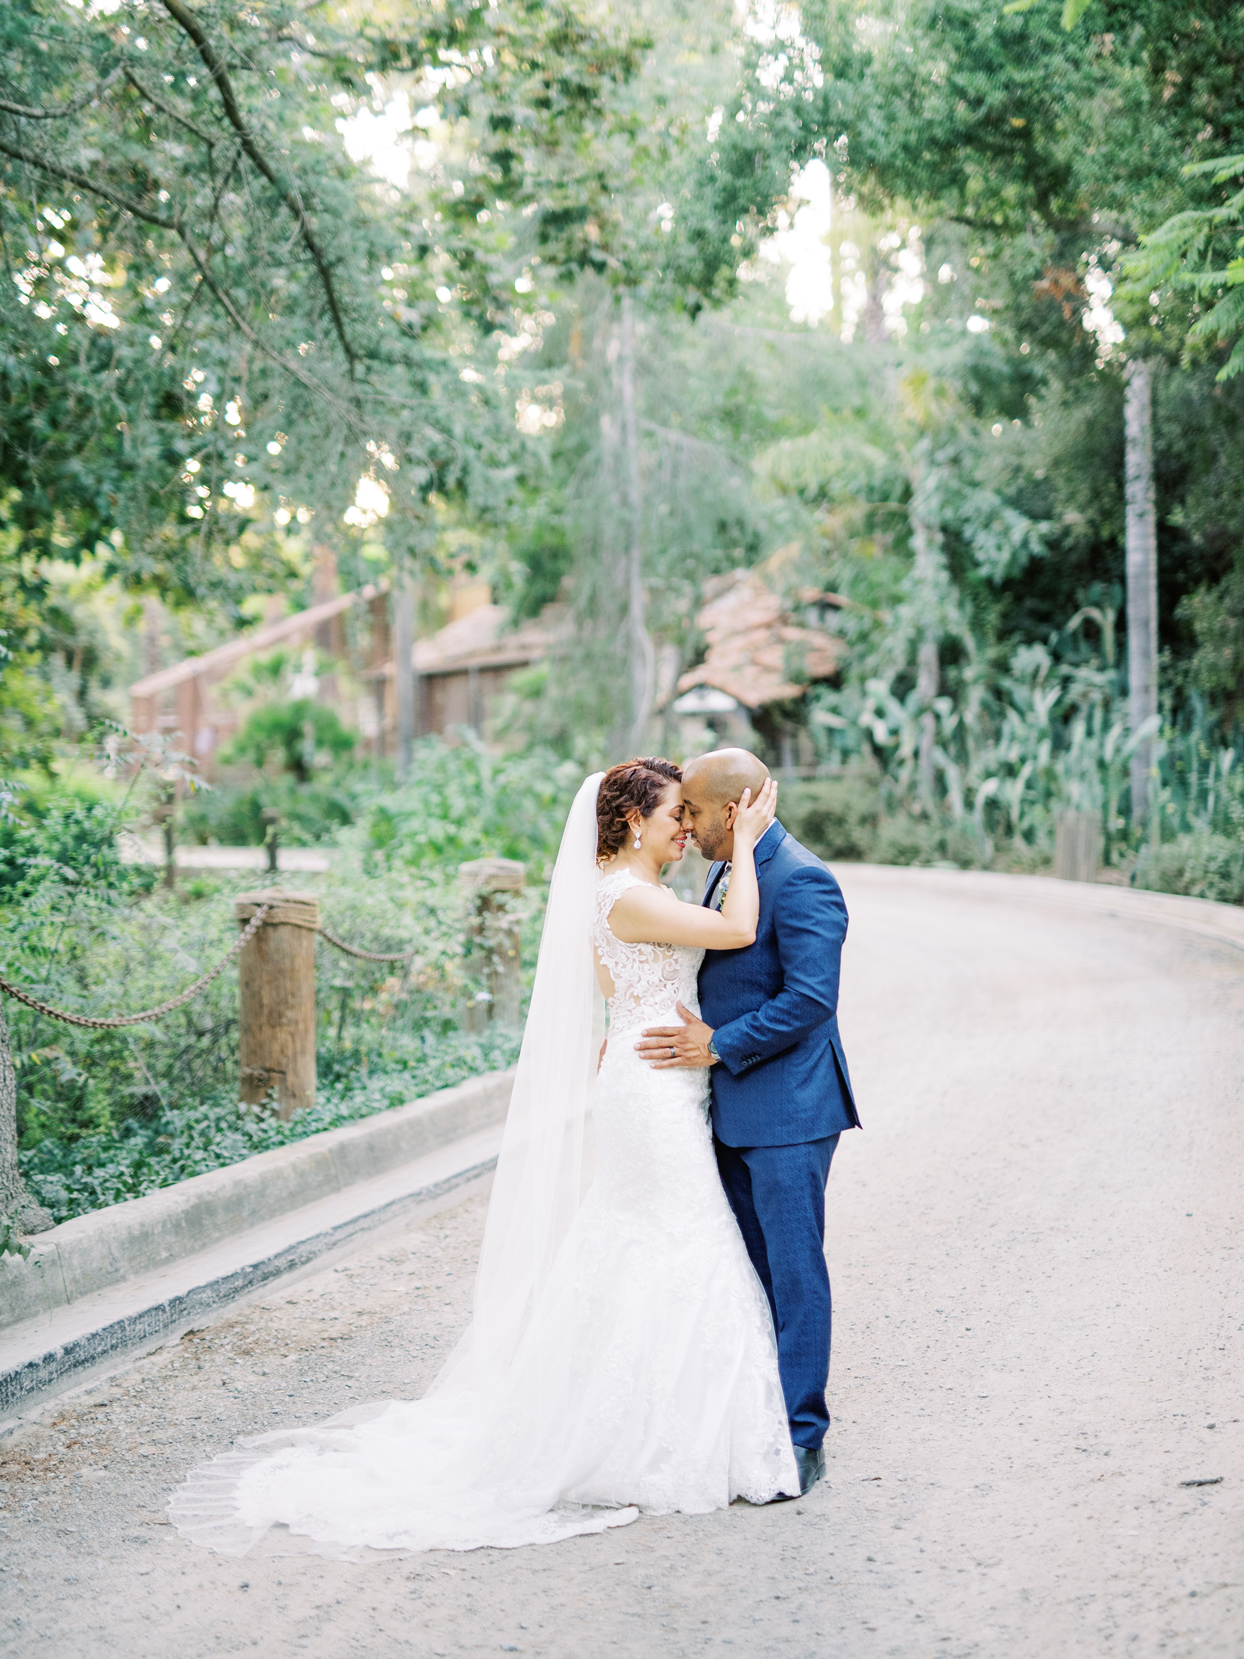 bride and groom embrace outside on pathway